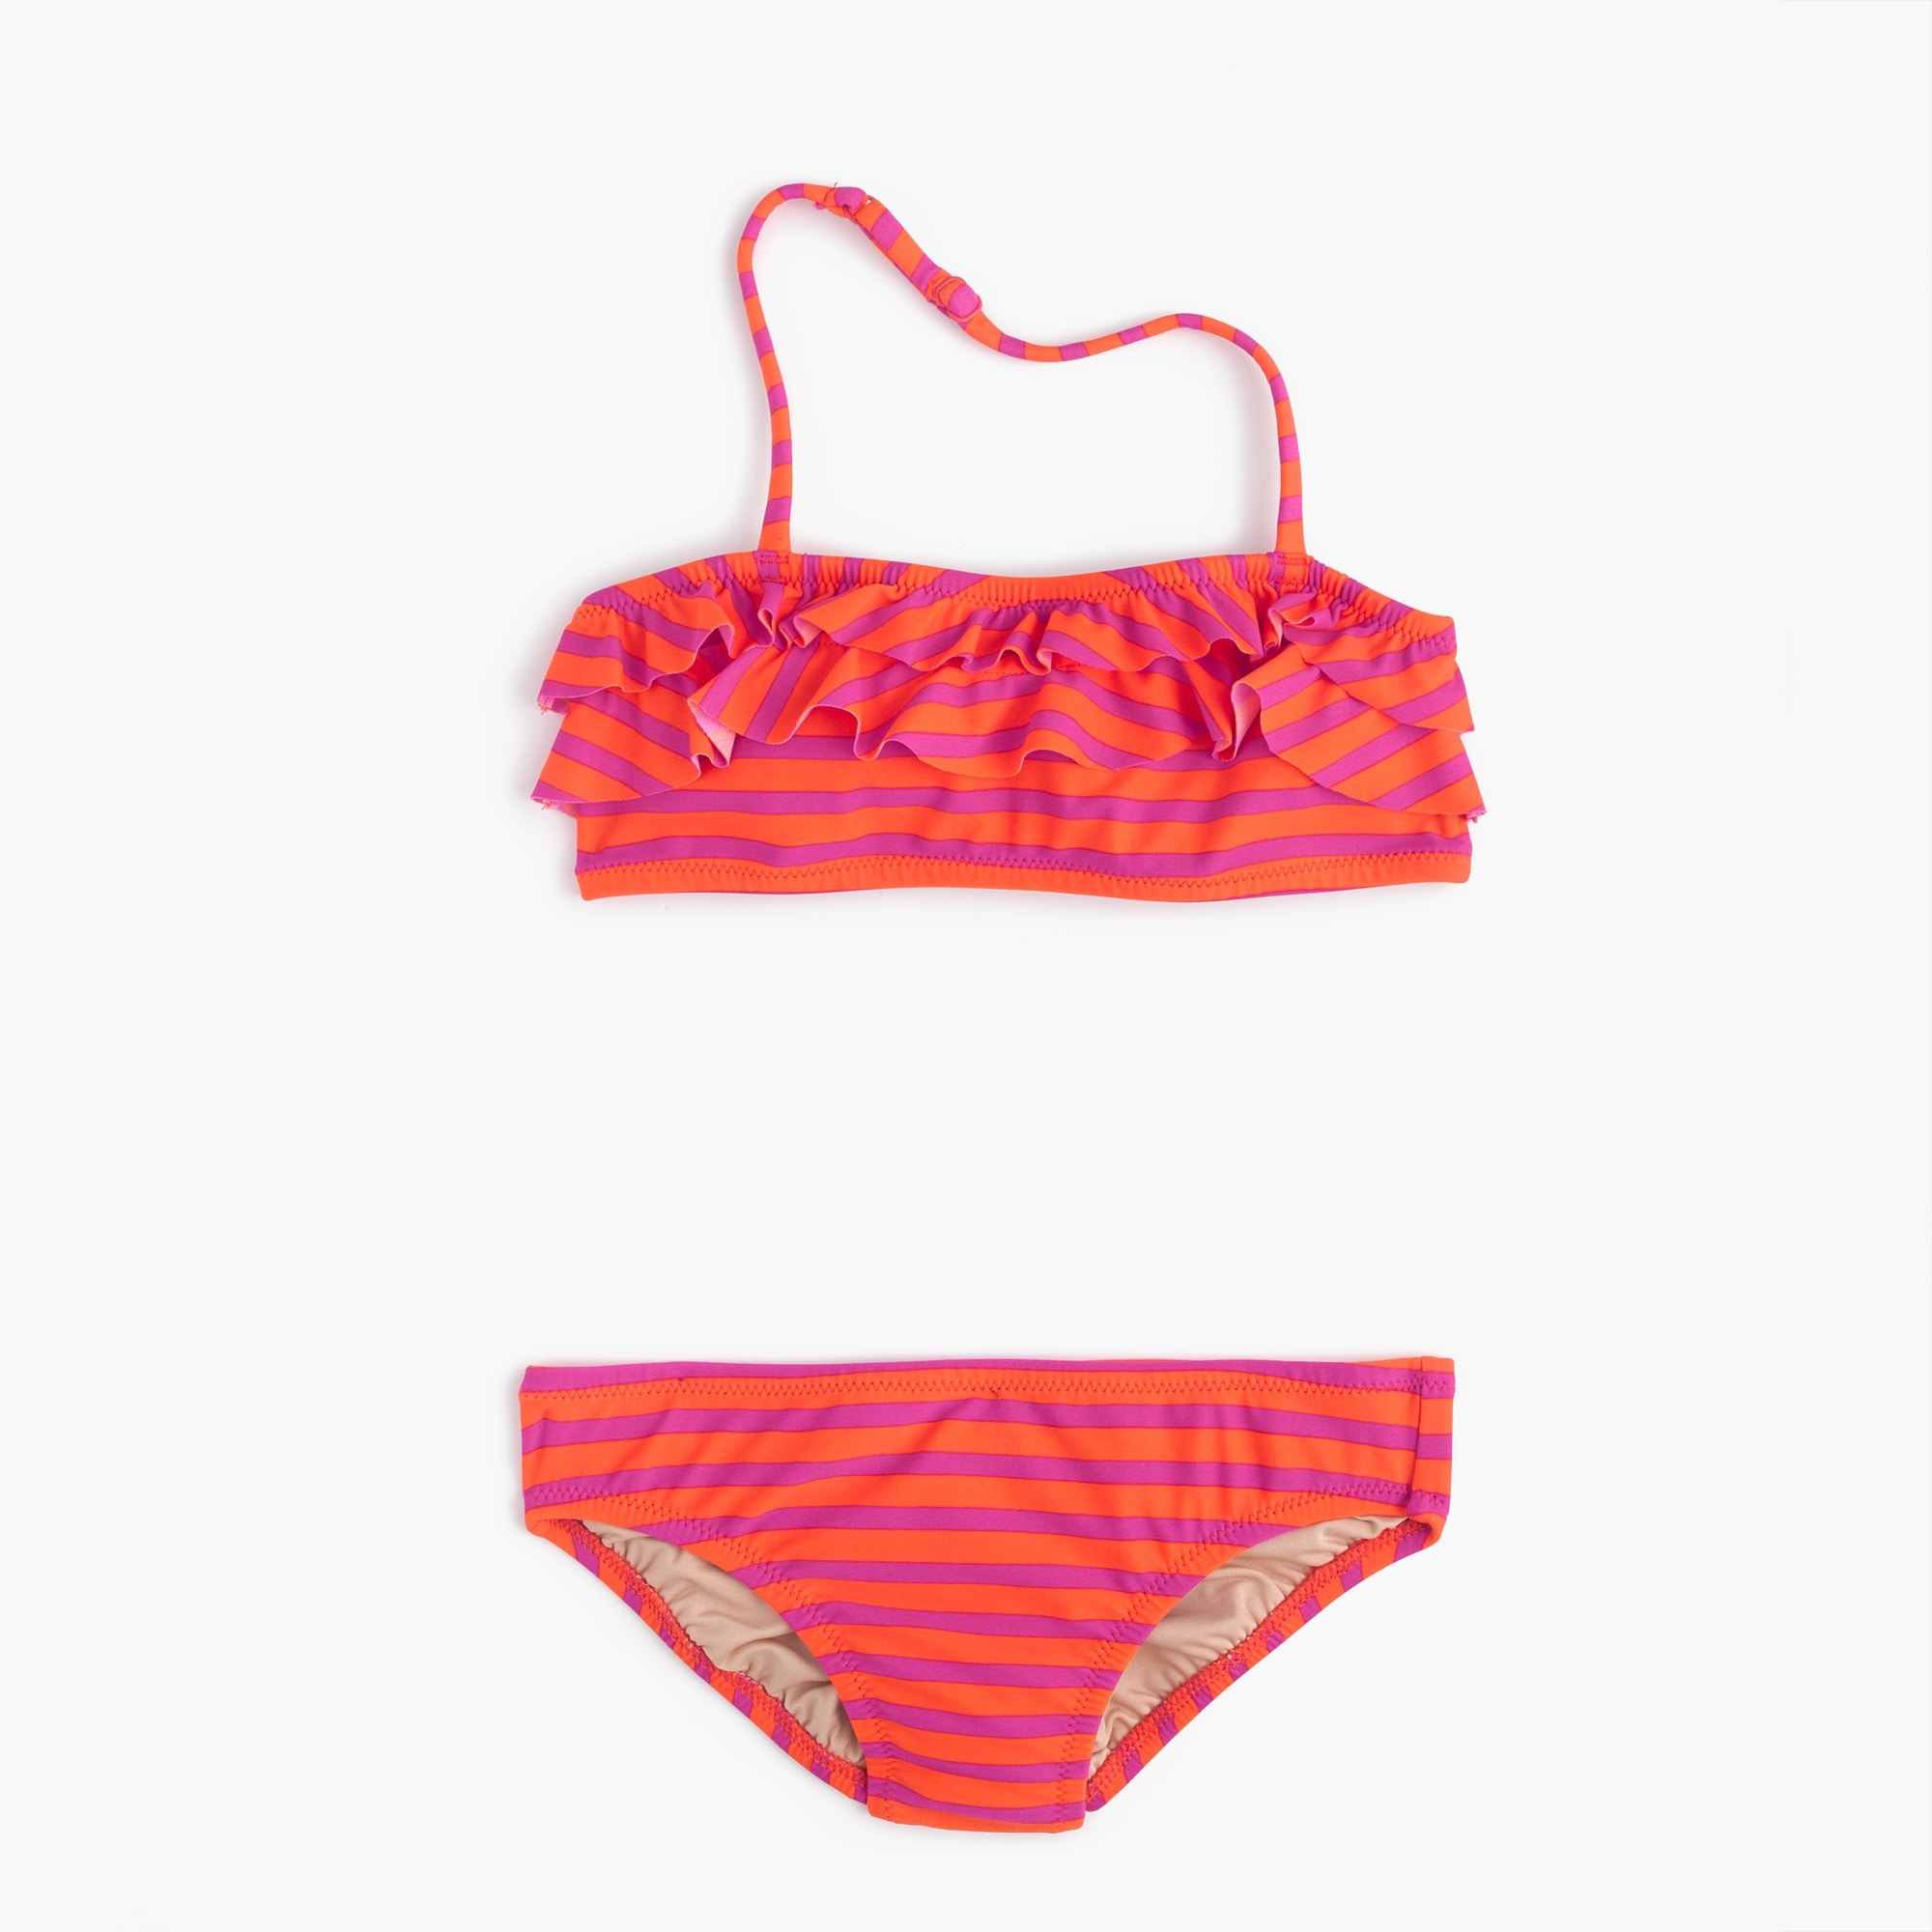 Girls' ruffle bikini set in sailor stripes girl swim & rash guards c